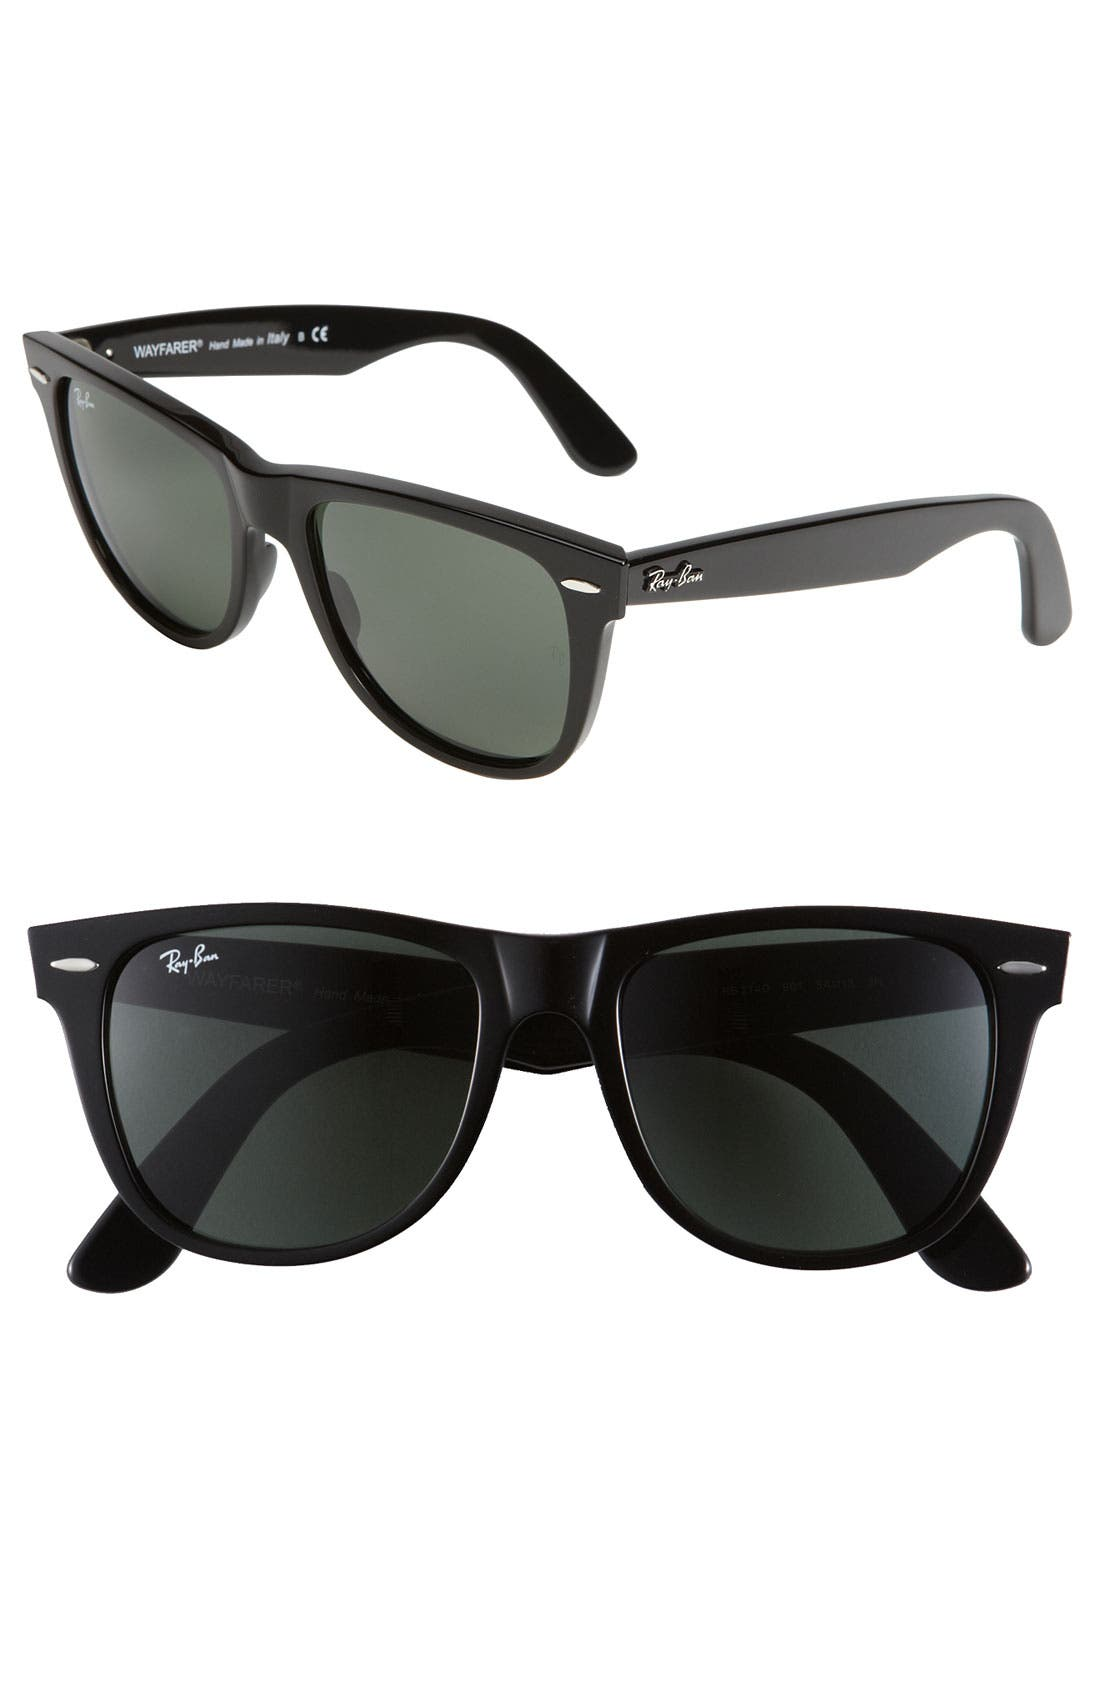 Main Image - Ray-Ban Large Classic Wayfarer 54mm Sunglasses